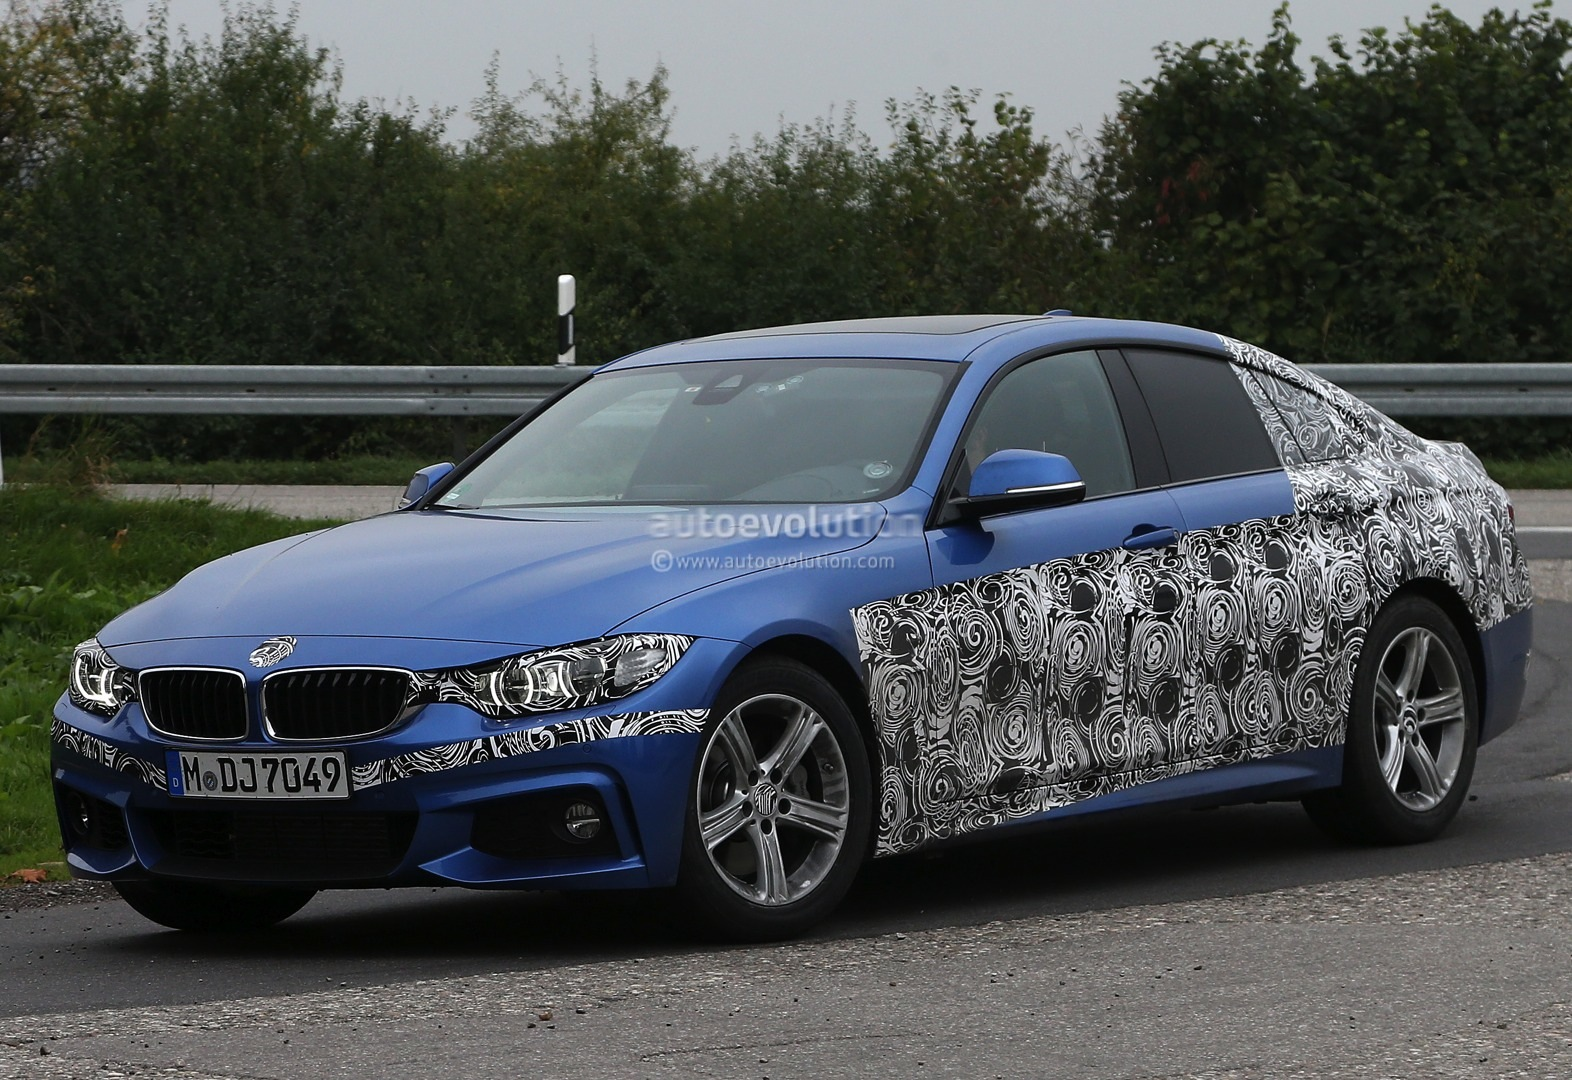 spyshots 2014 f36 bmw 4 series gran coupe sheds camo. Black Bedroom Furniture Sets. Home Design Ideas